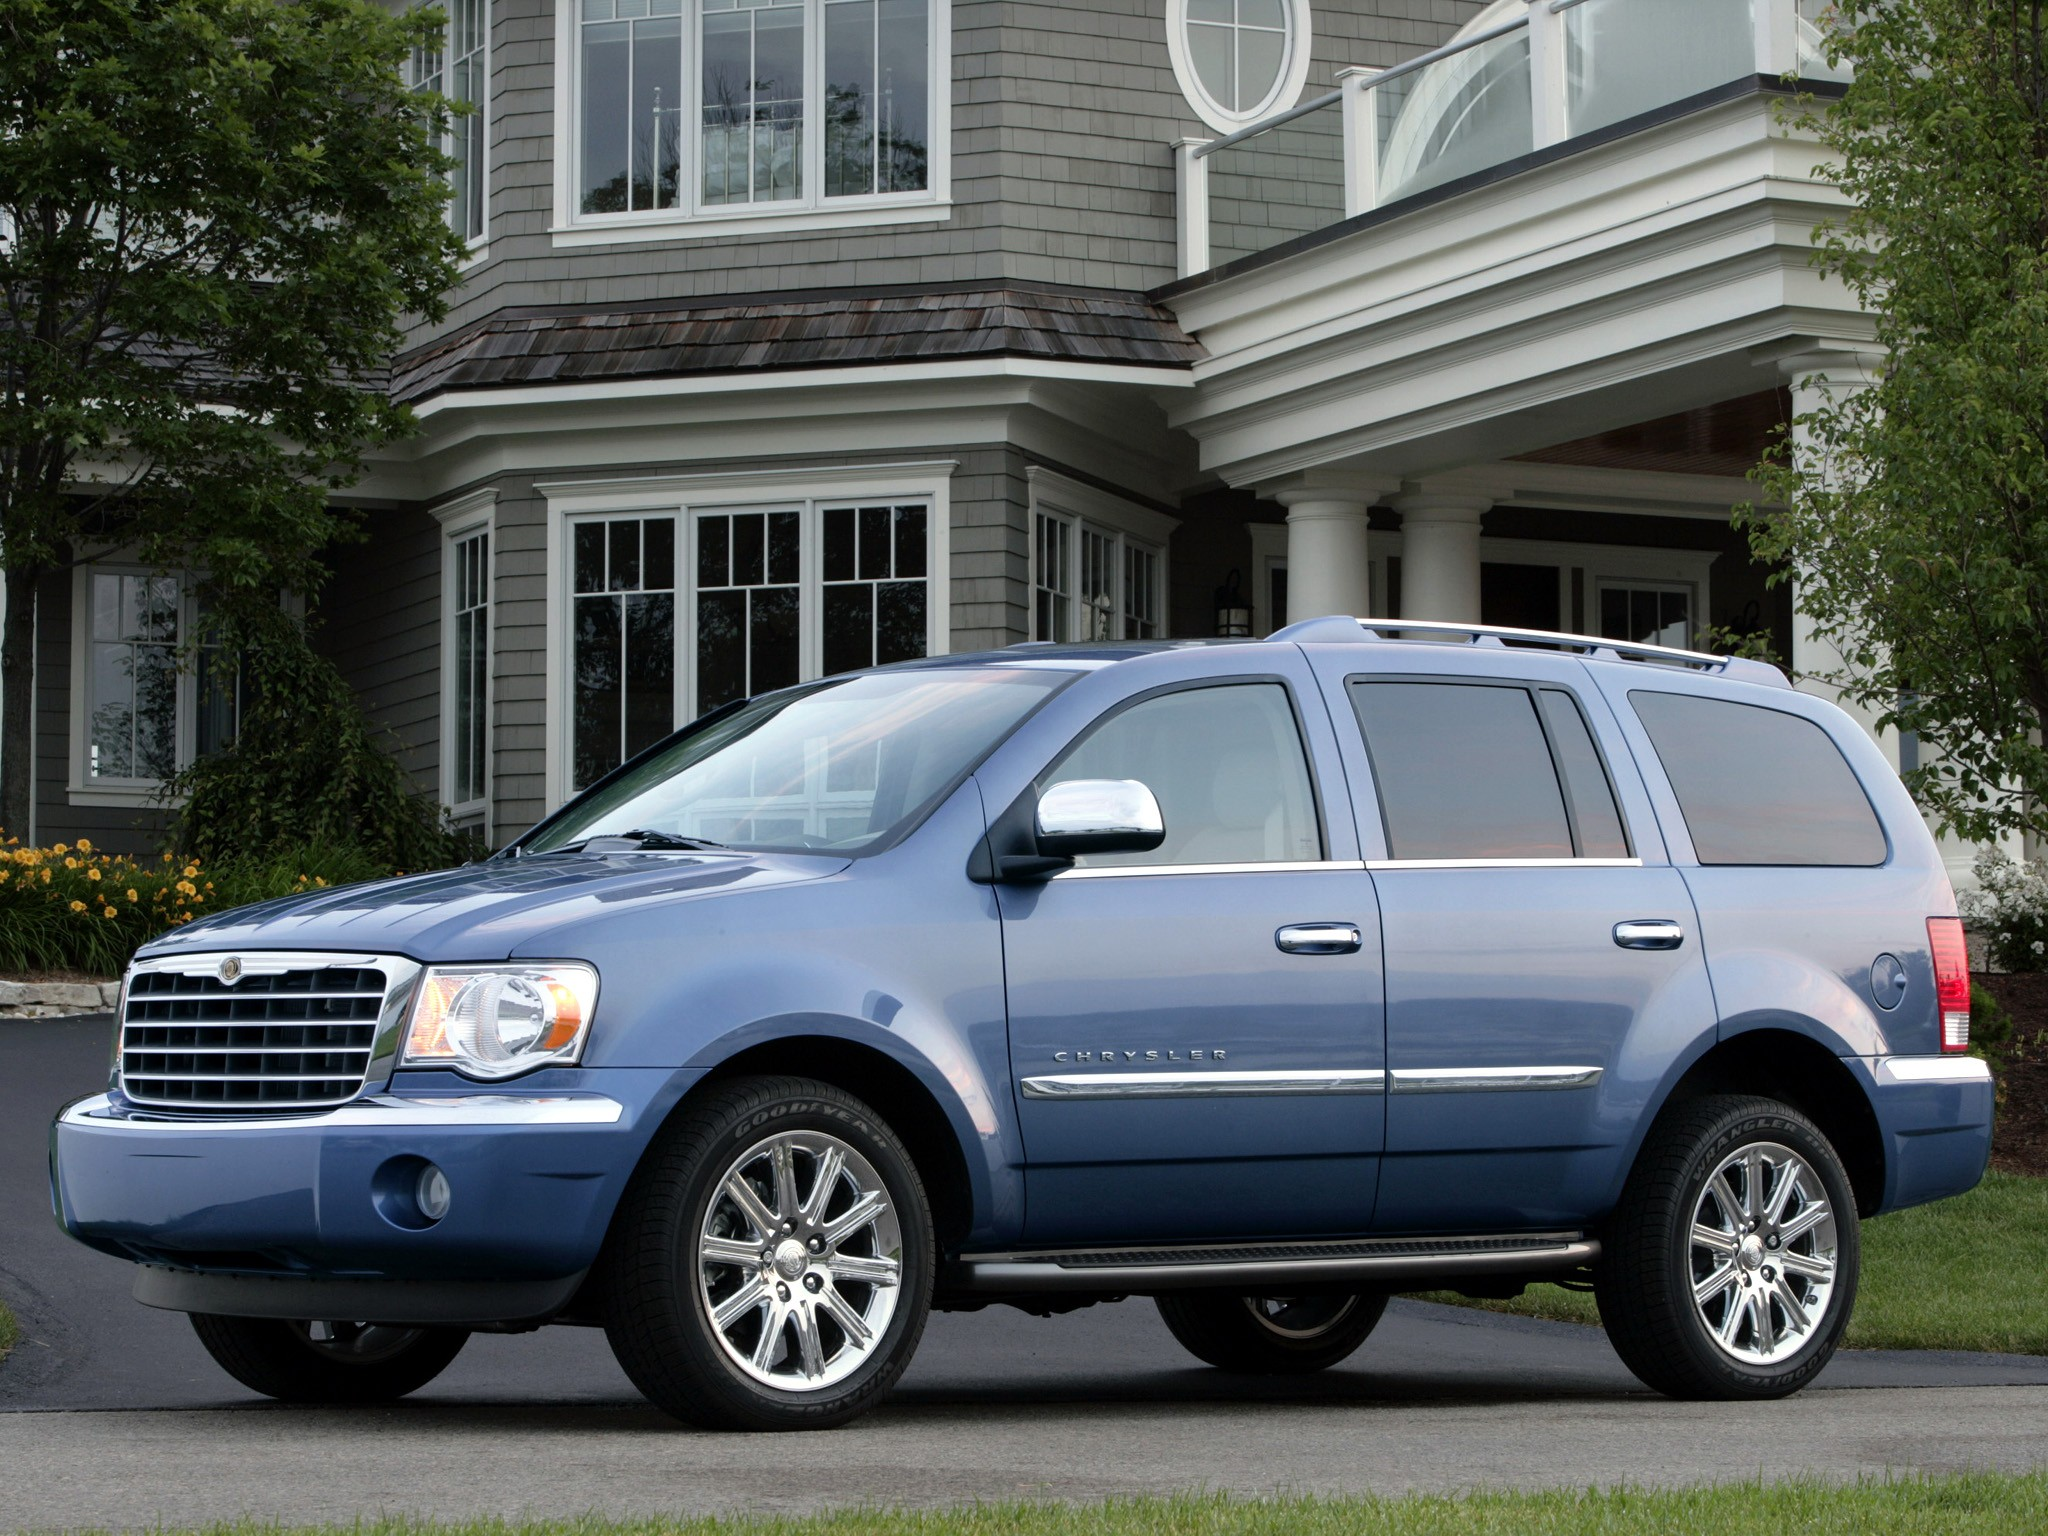 Chrysler Aspen on 2005 Dodge Durango